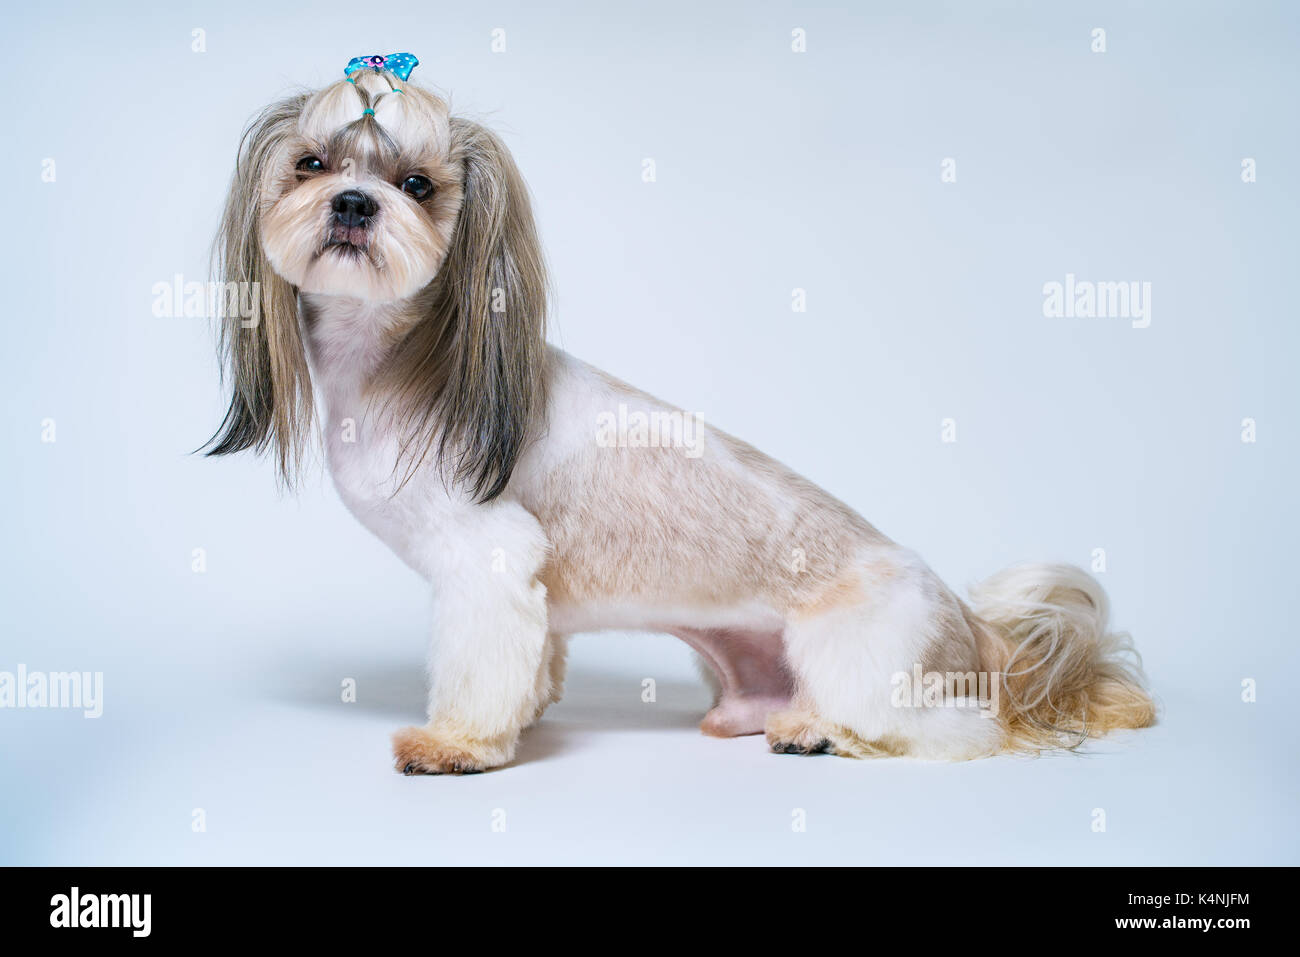 Shih Tzu Dog With Short Hair After Grooming Side View On Bright